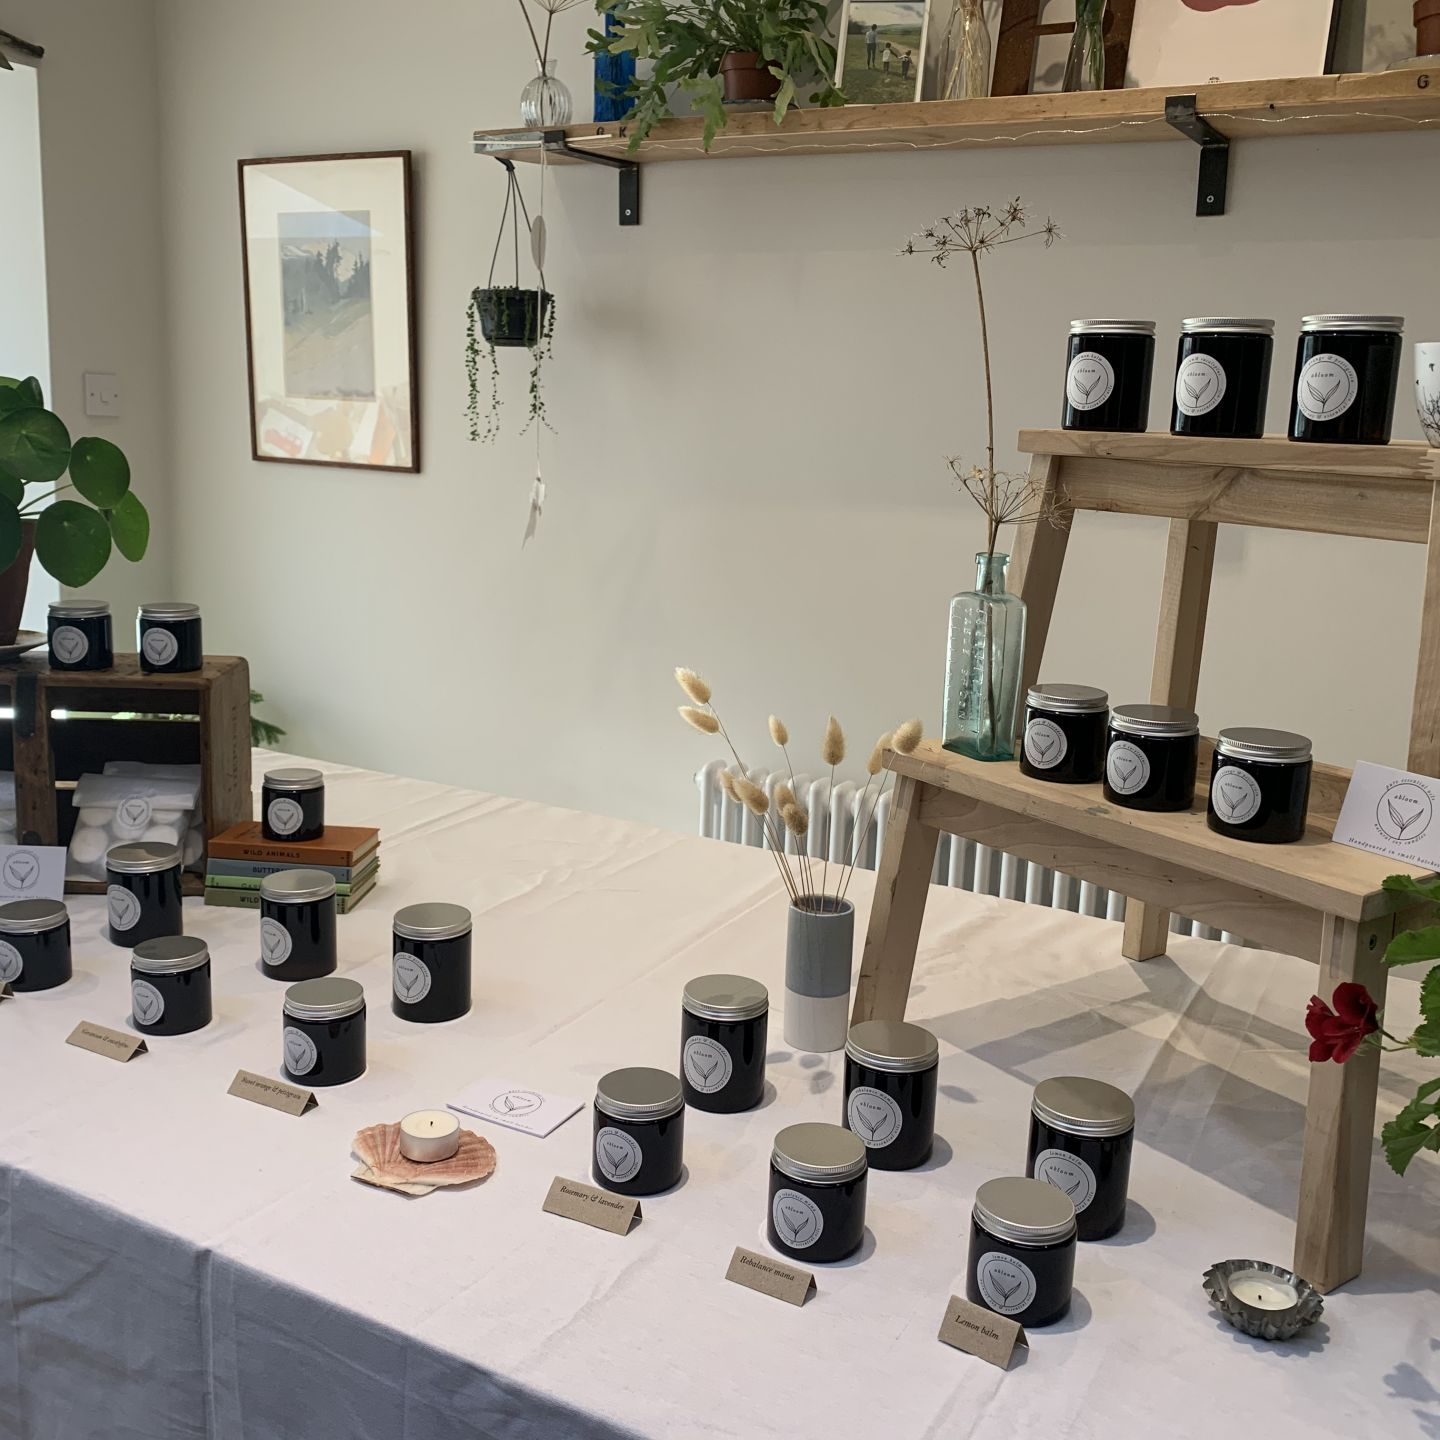 Member Profile - Abloom Candles